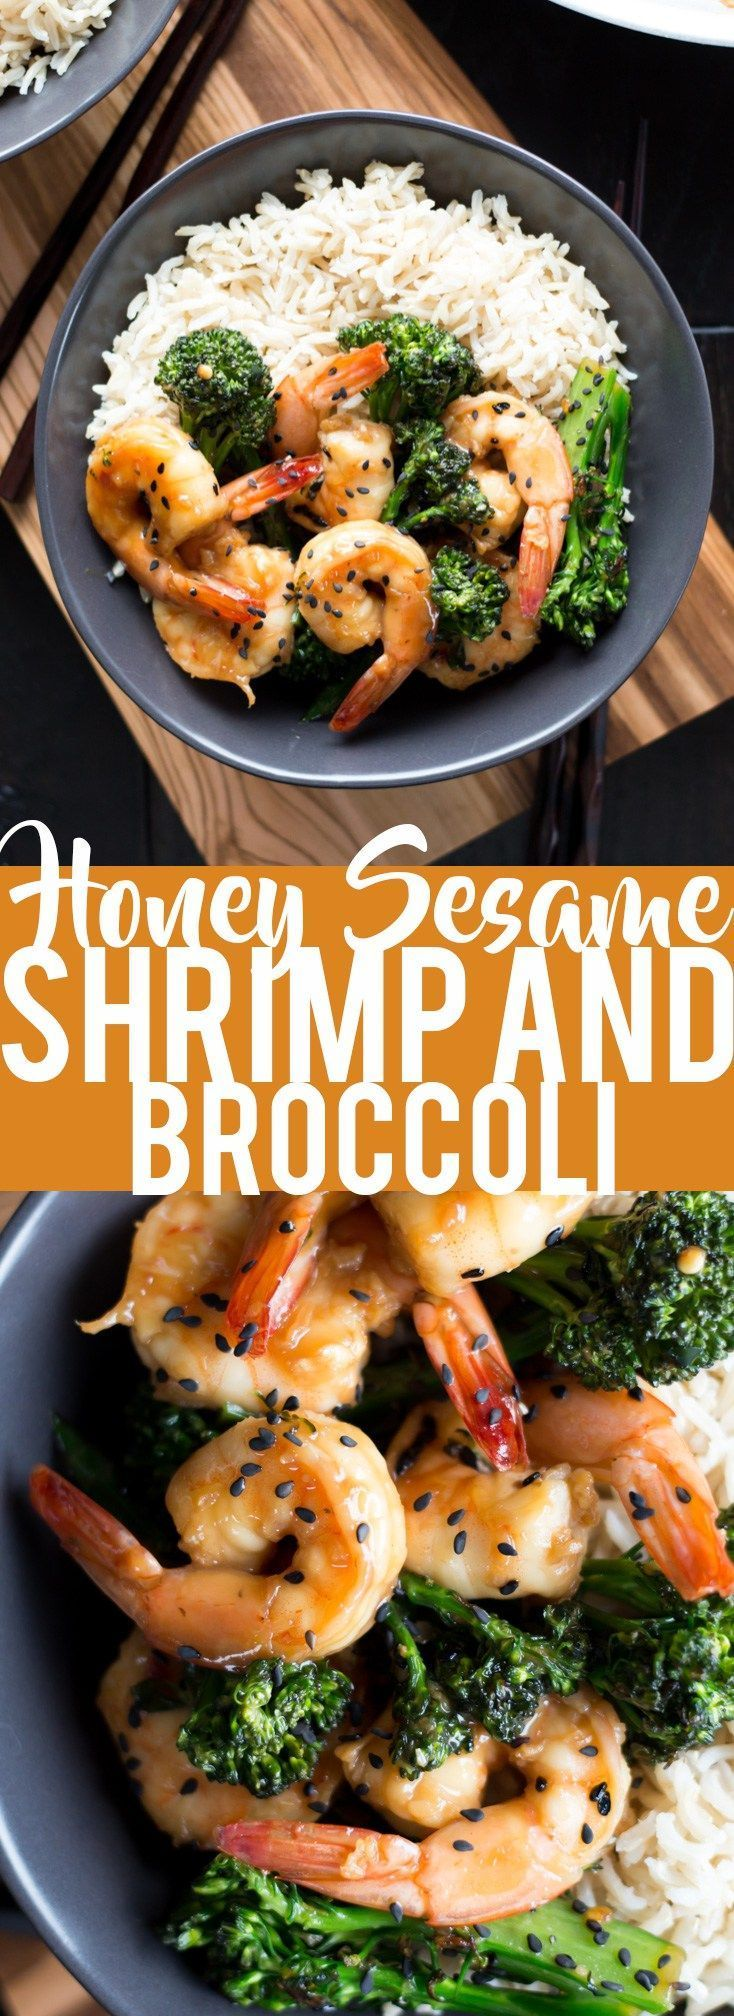 This Honey Sesame Shrimp and Broccoli is a quick and easy dinner. Shrimp and broccoli are quickly sauteed in a sweet and savory sauce that everyone will love! This is great served over rice or noodles, or you can use cauliflower rice or zoodles for a lower carb dinner.: